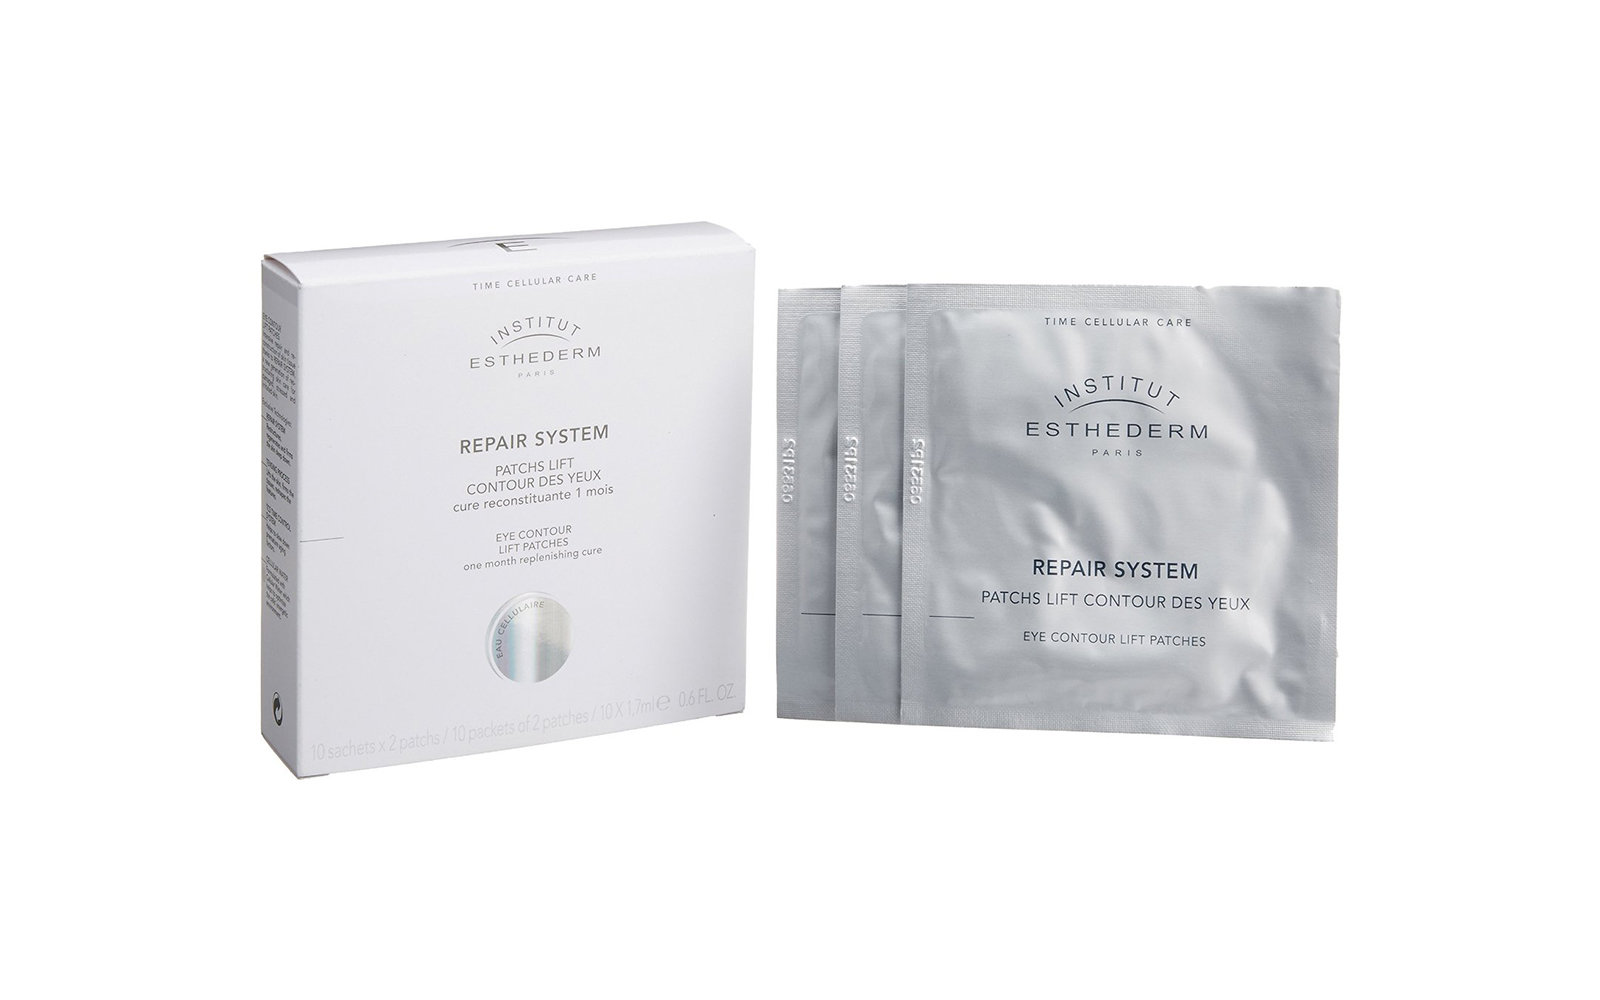 Esthederm Repair System Eye Contour Lift Patches